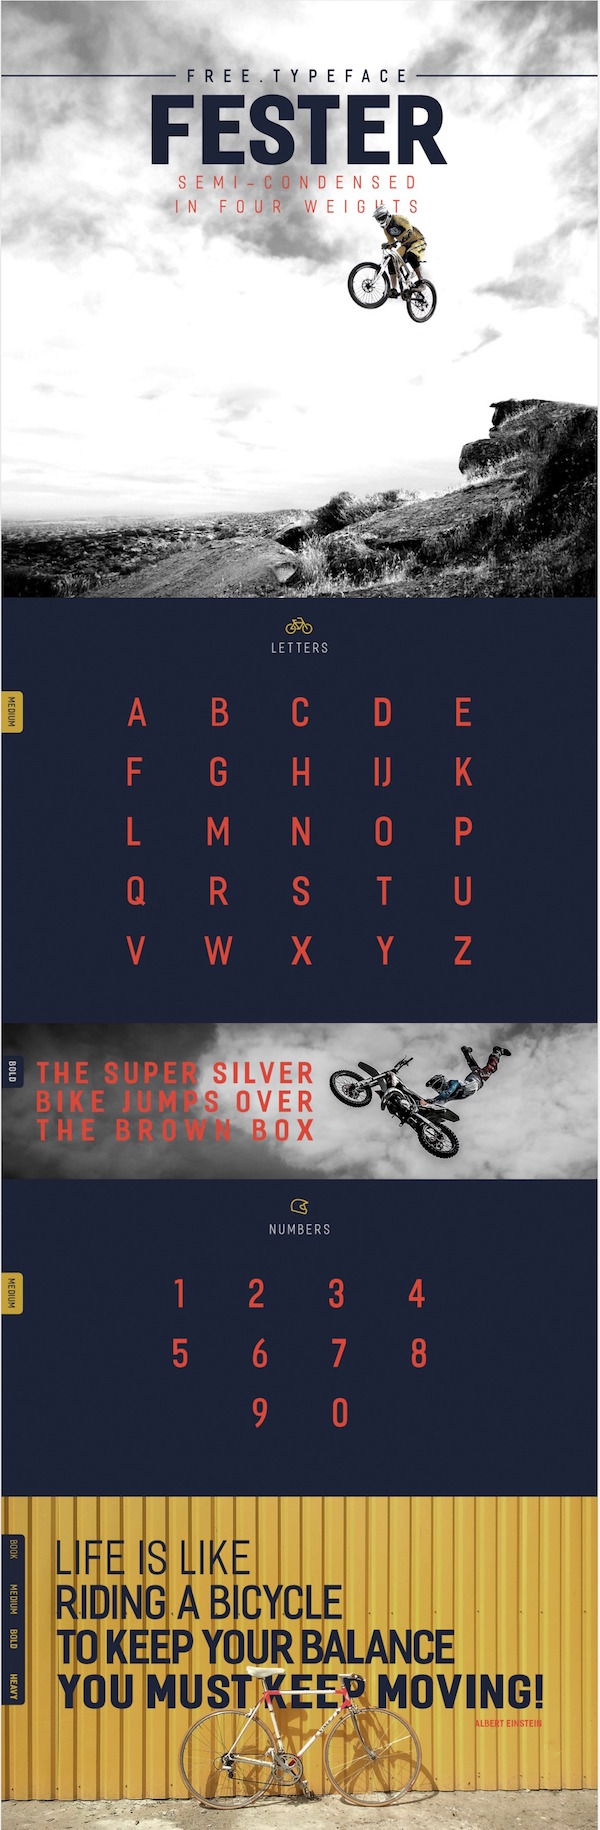 Fester – Free Typeface